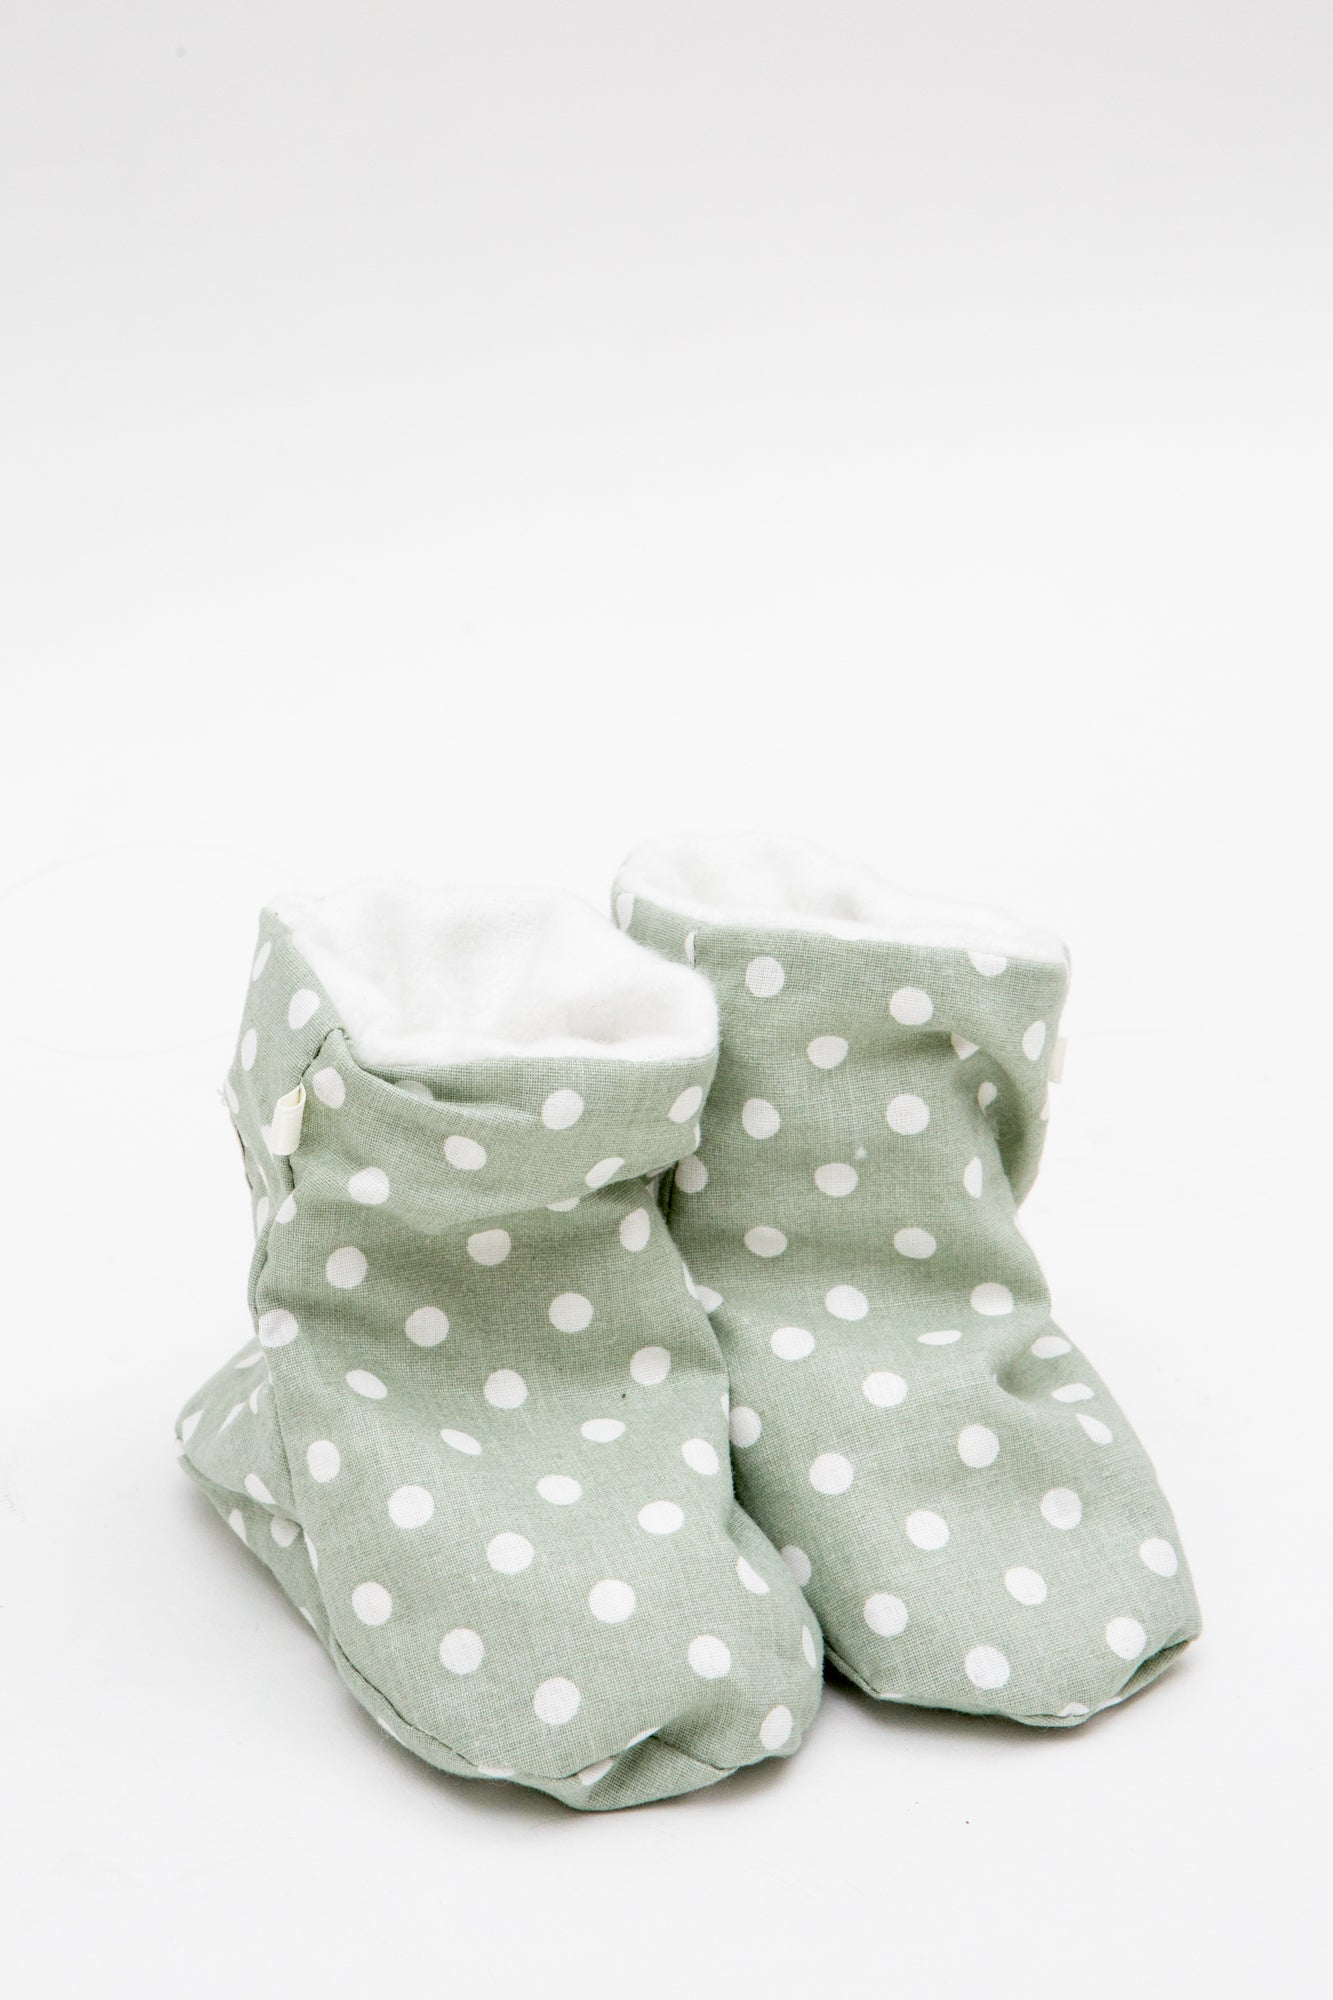 Crib Boots in Mint Polka Dots